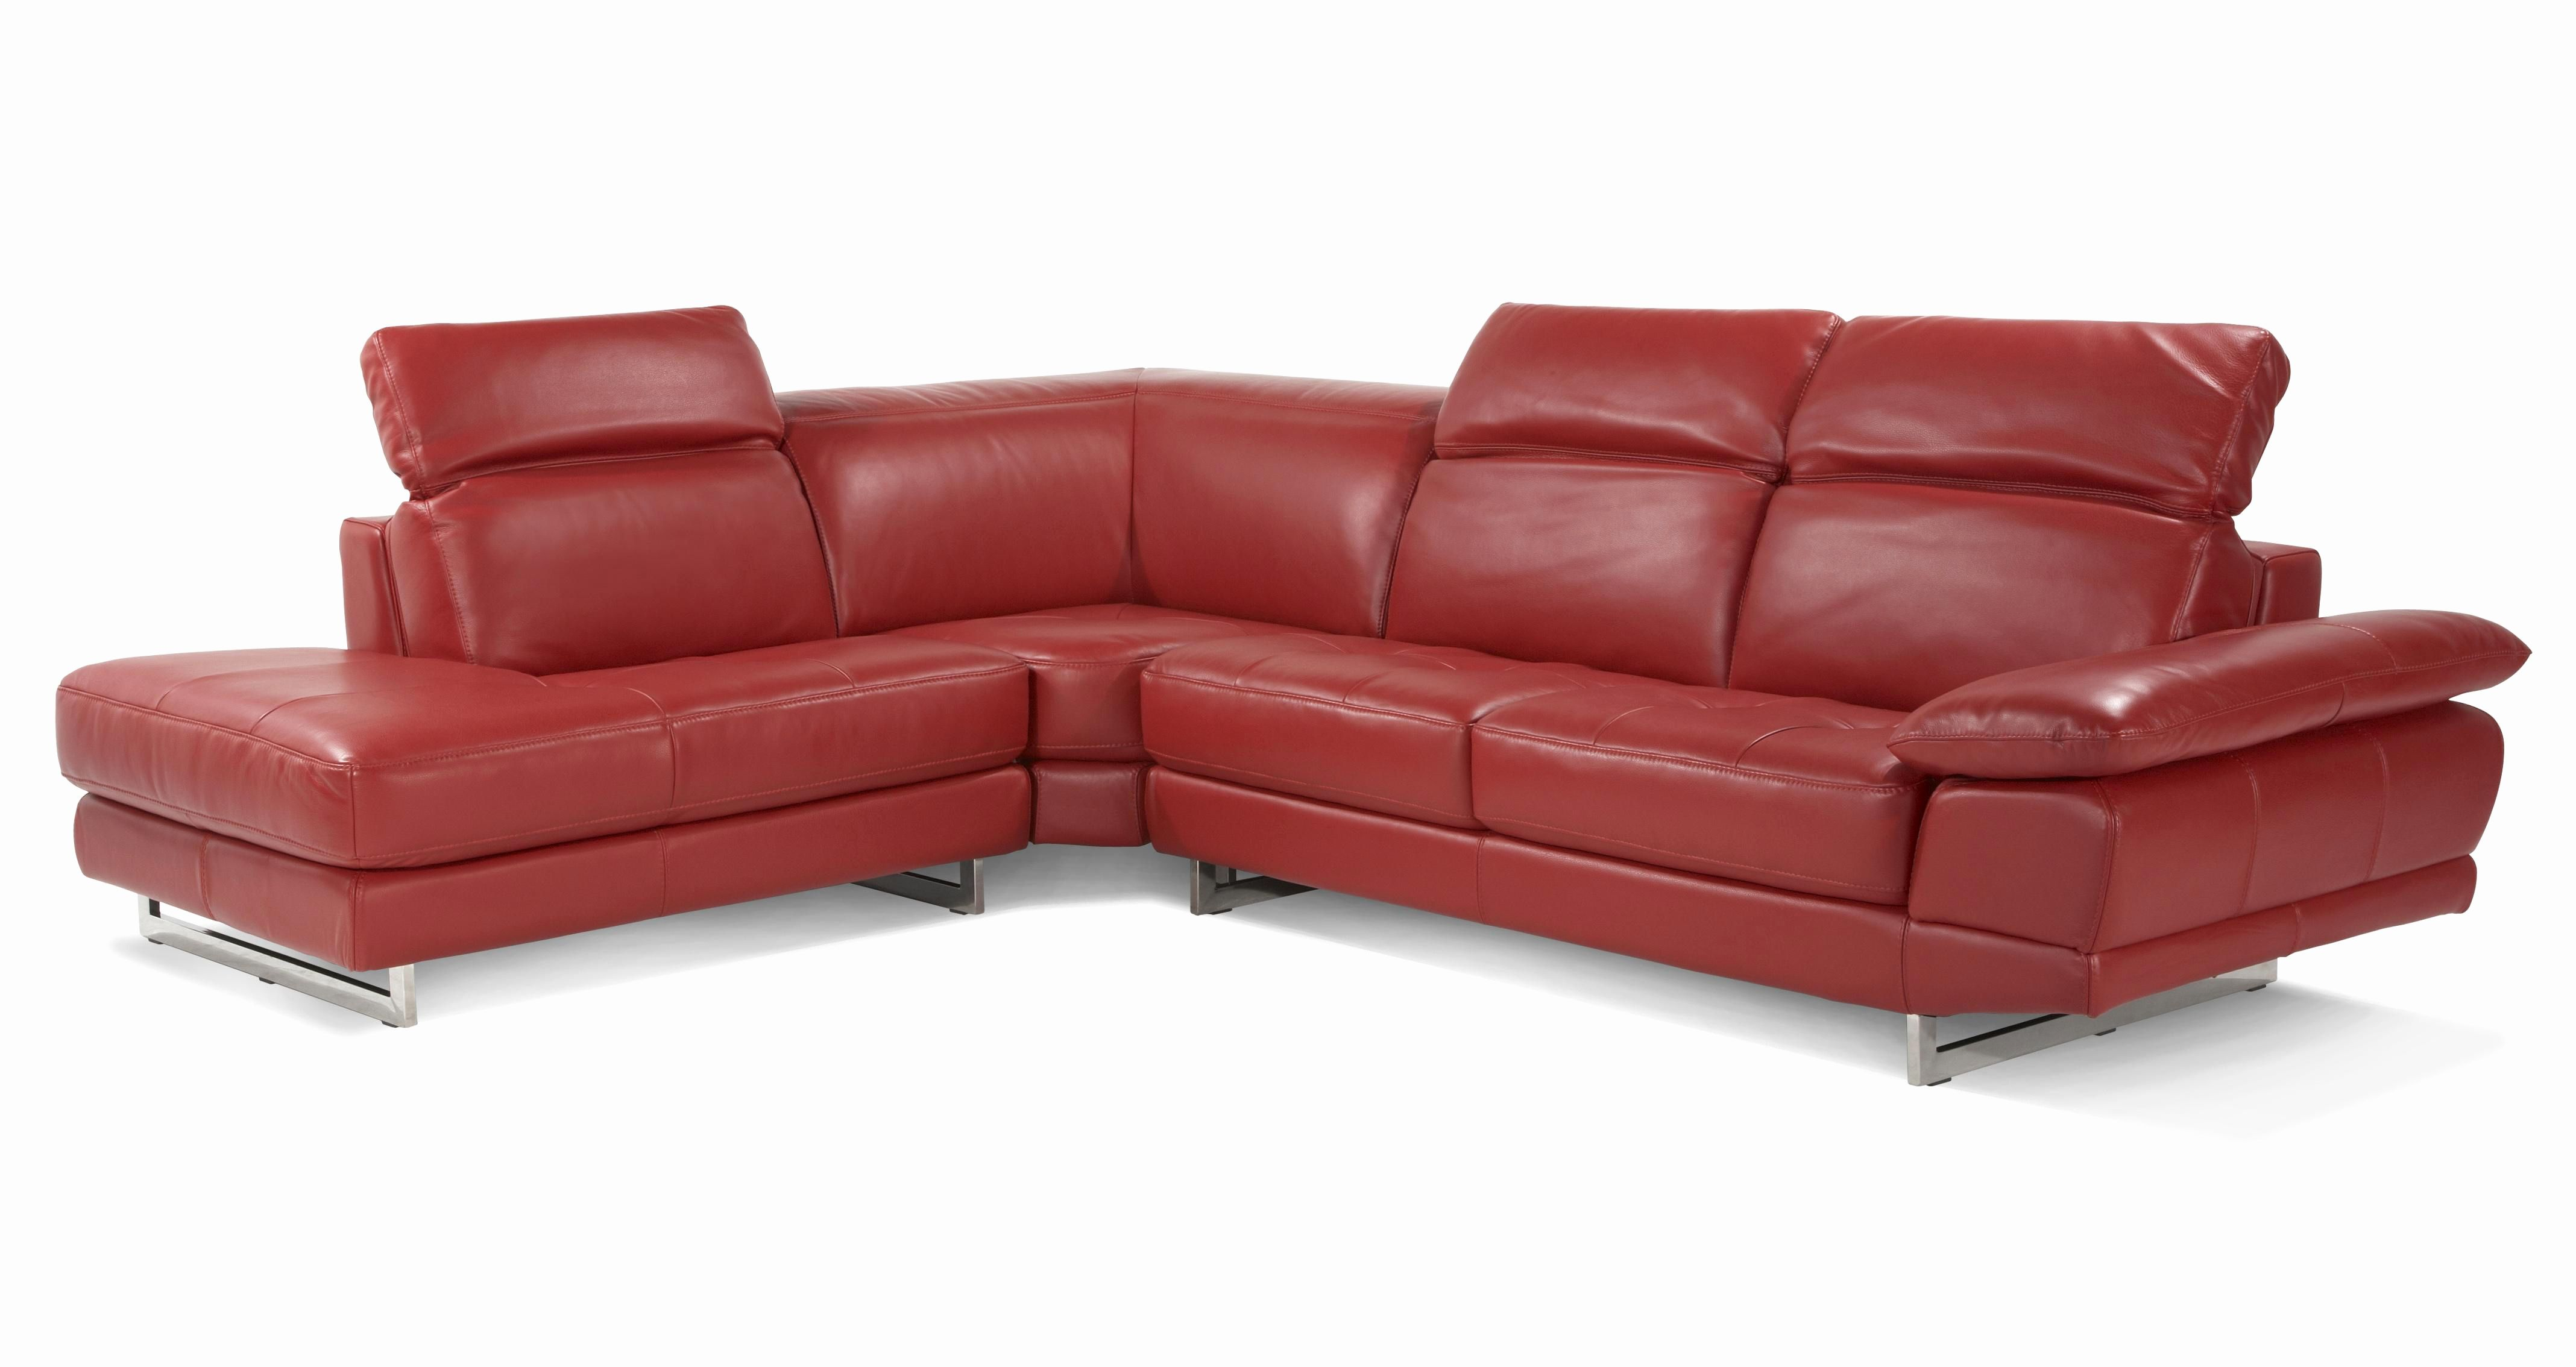 Inspirational Leather Corner Sofa Photographs Dfs Freya Leather